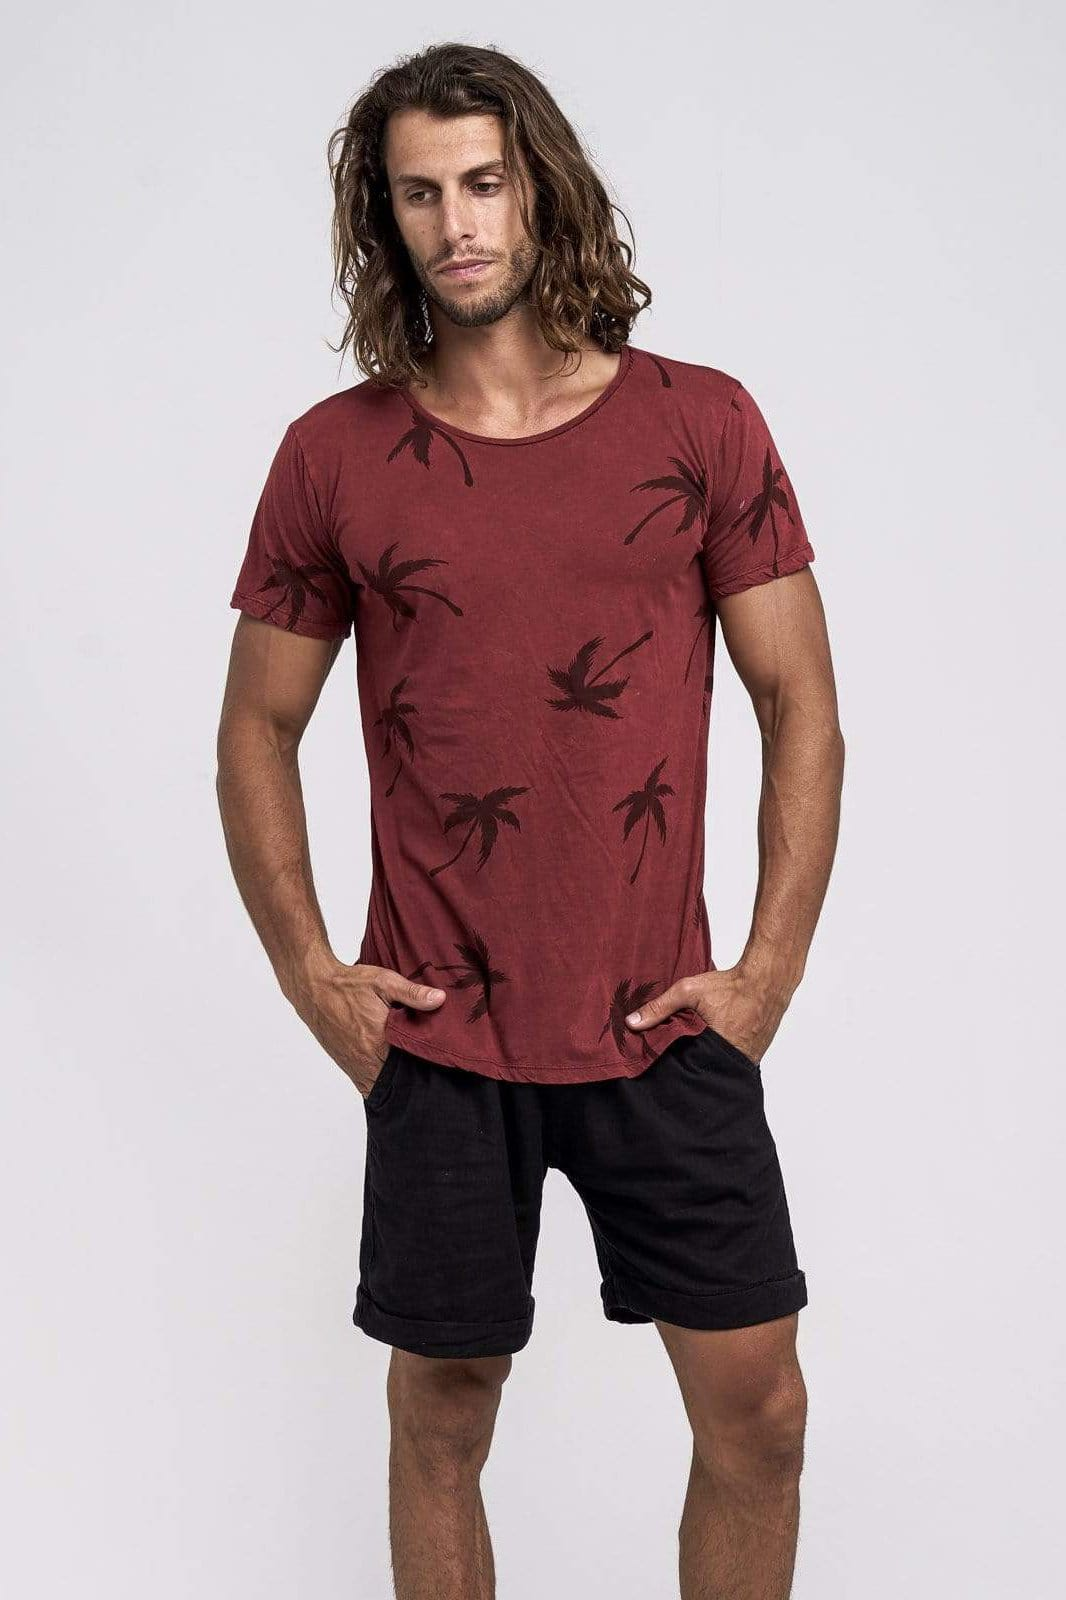 Palm Tee - Man T-Shirt - LOST IN PARADISE